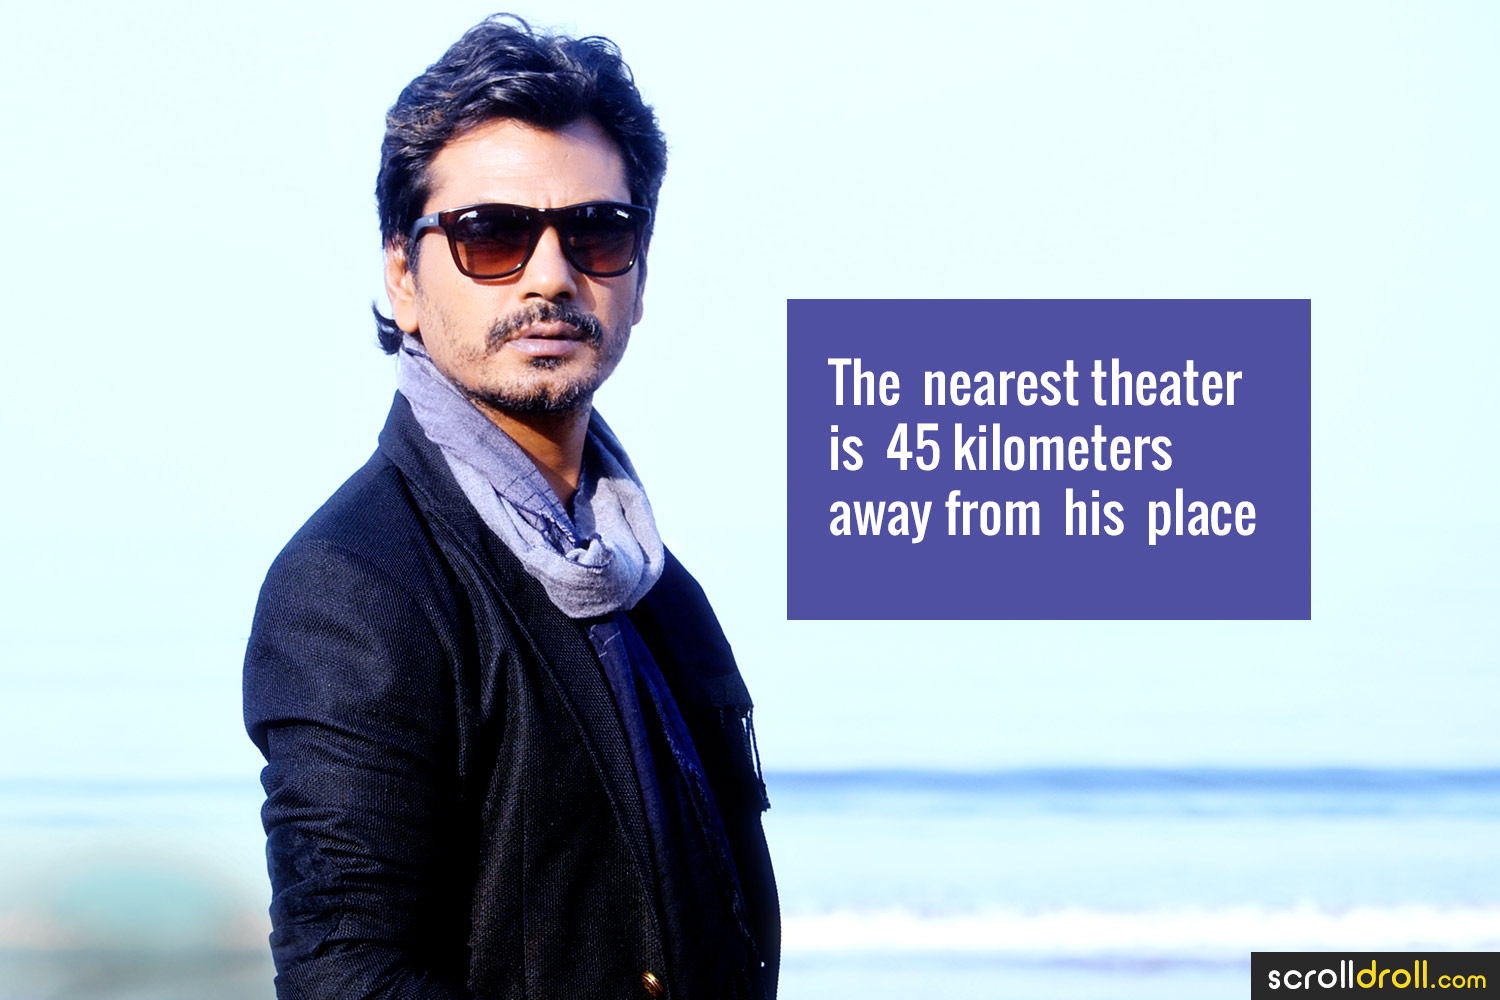 Facts about Nawazuddin Siddique-The nearest theater is 45 kilometers away from his place